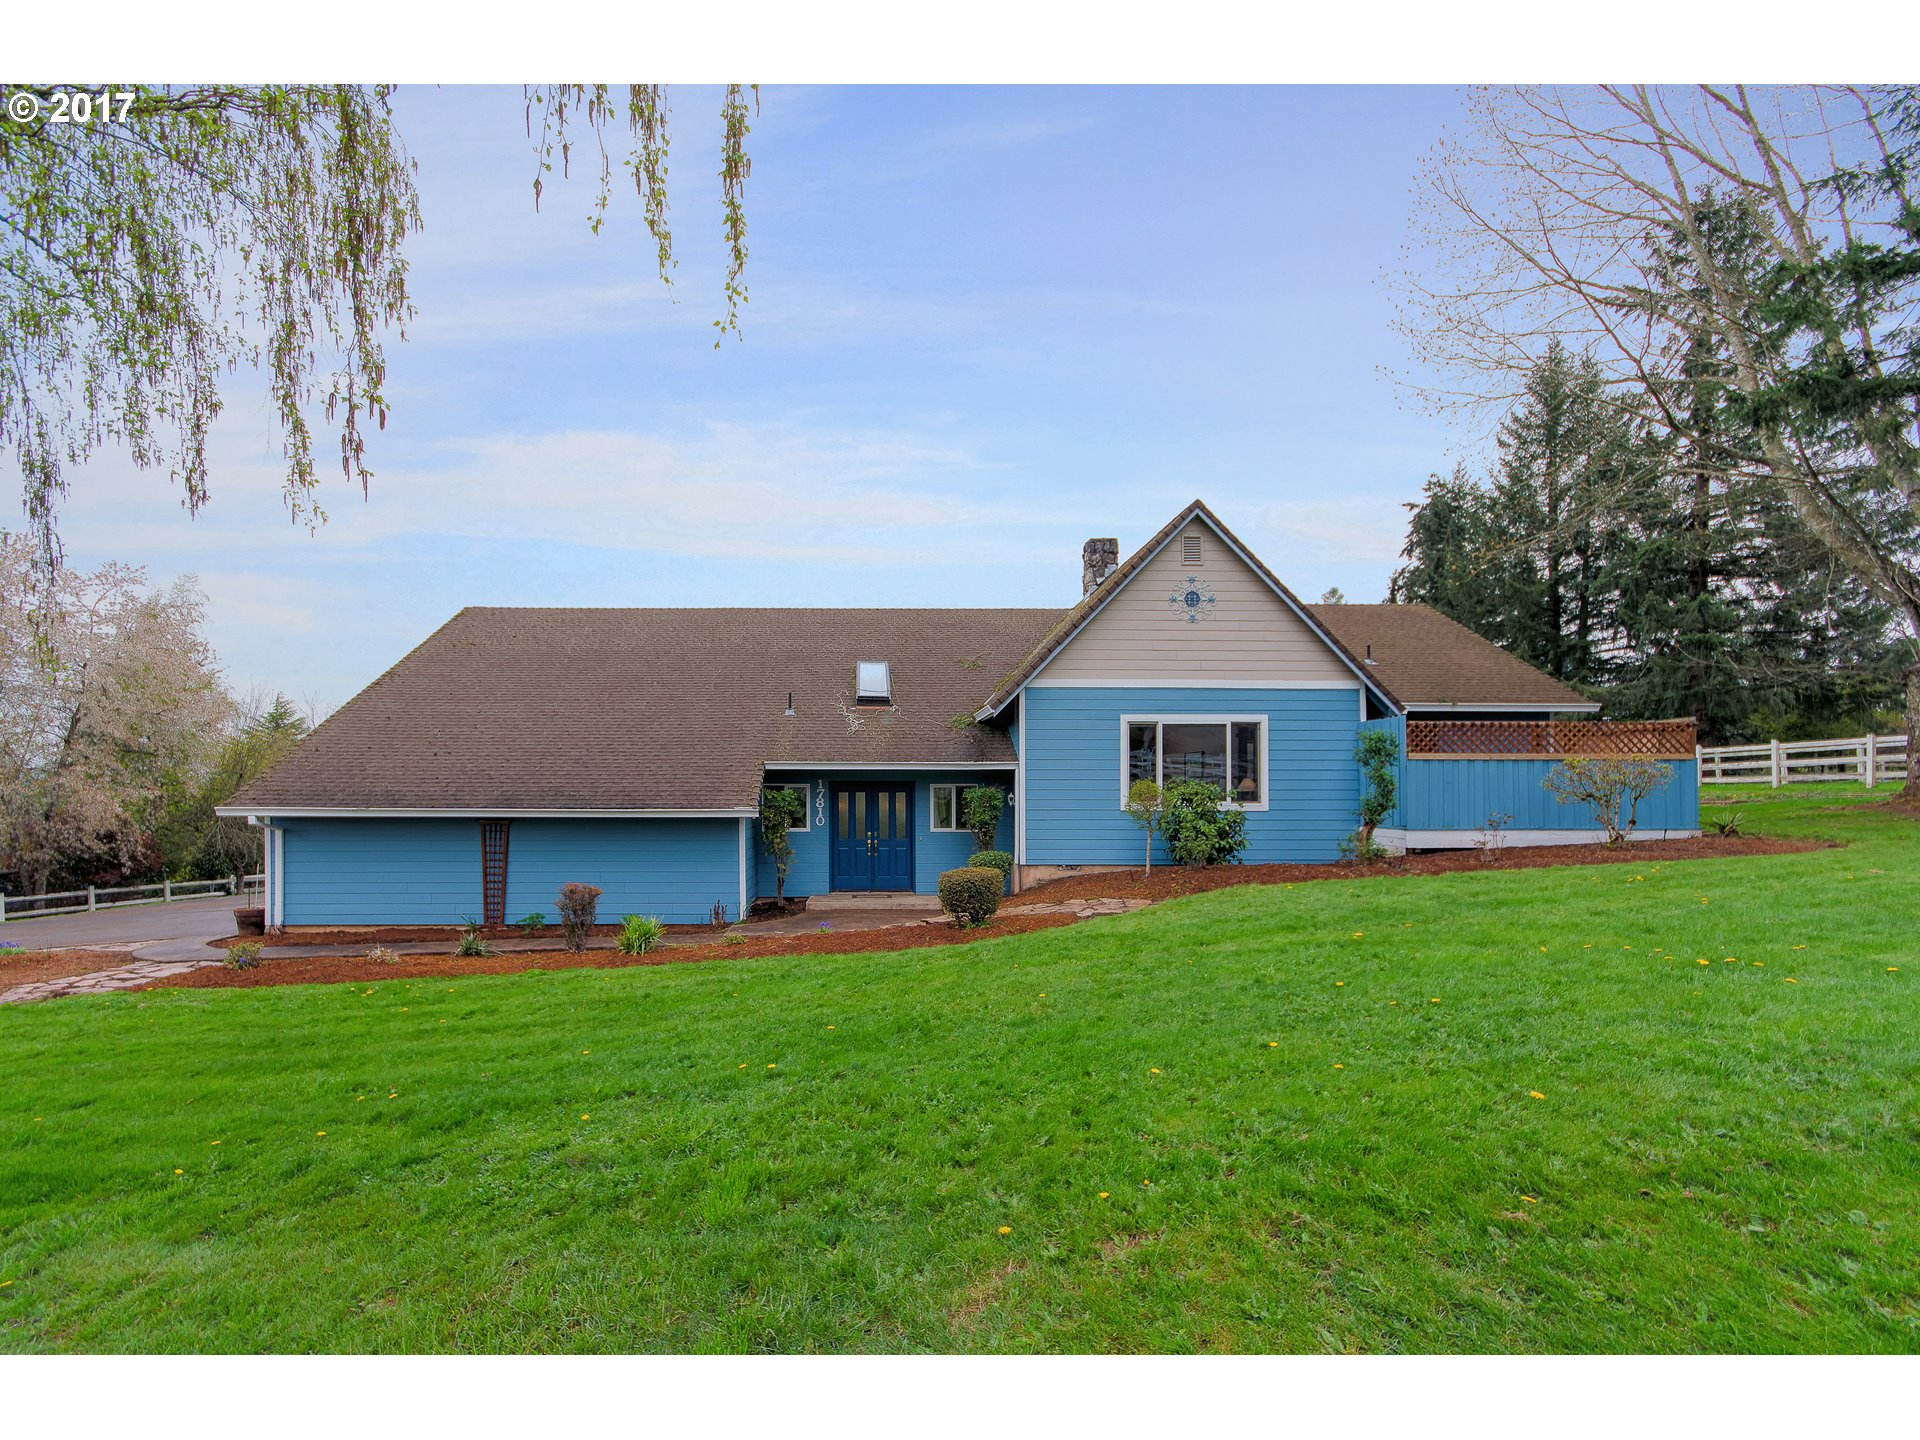 17810 S CANTER LN, Oregon City, OR 97045